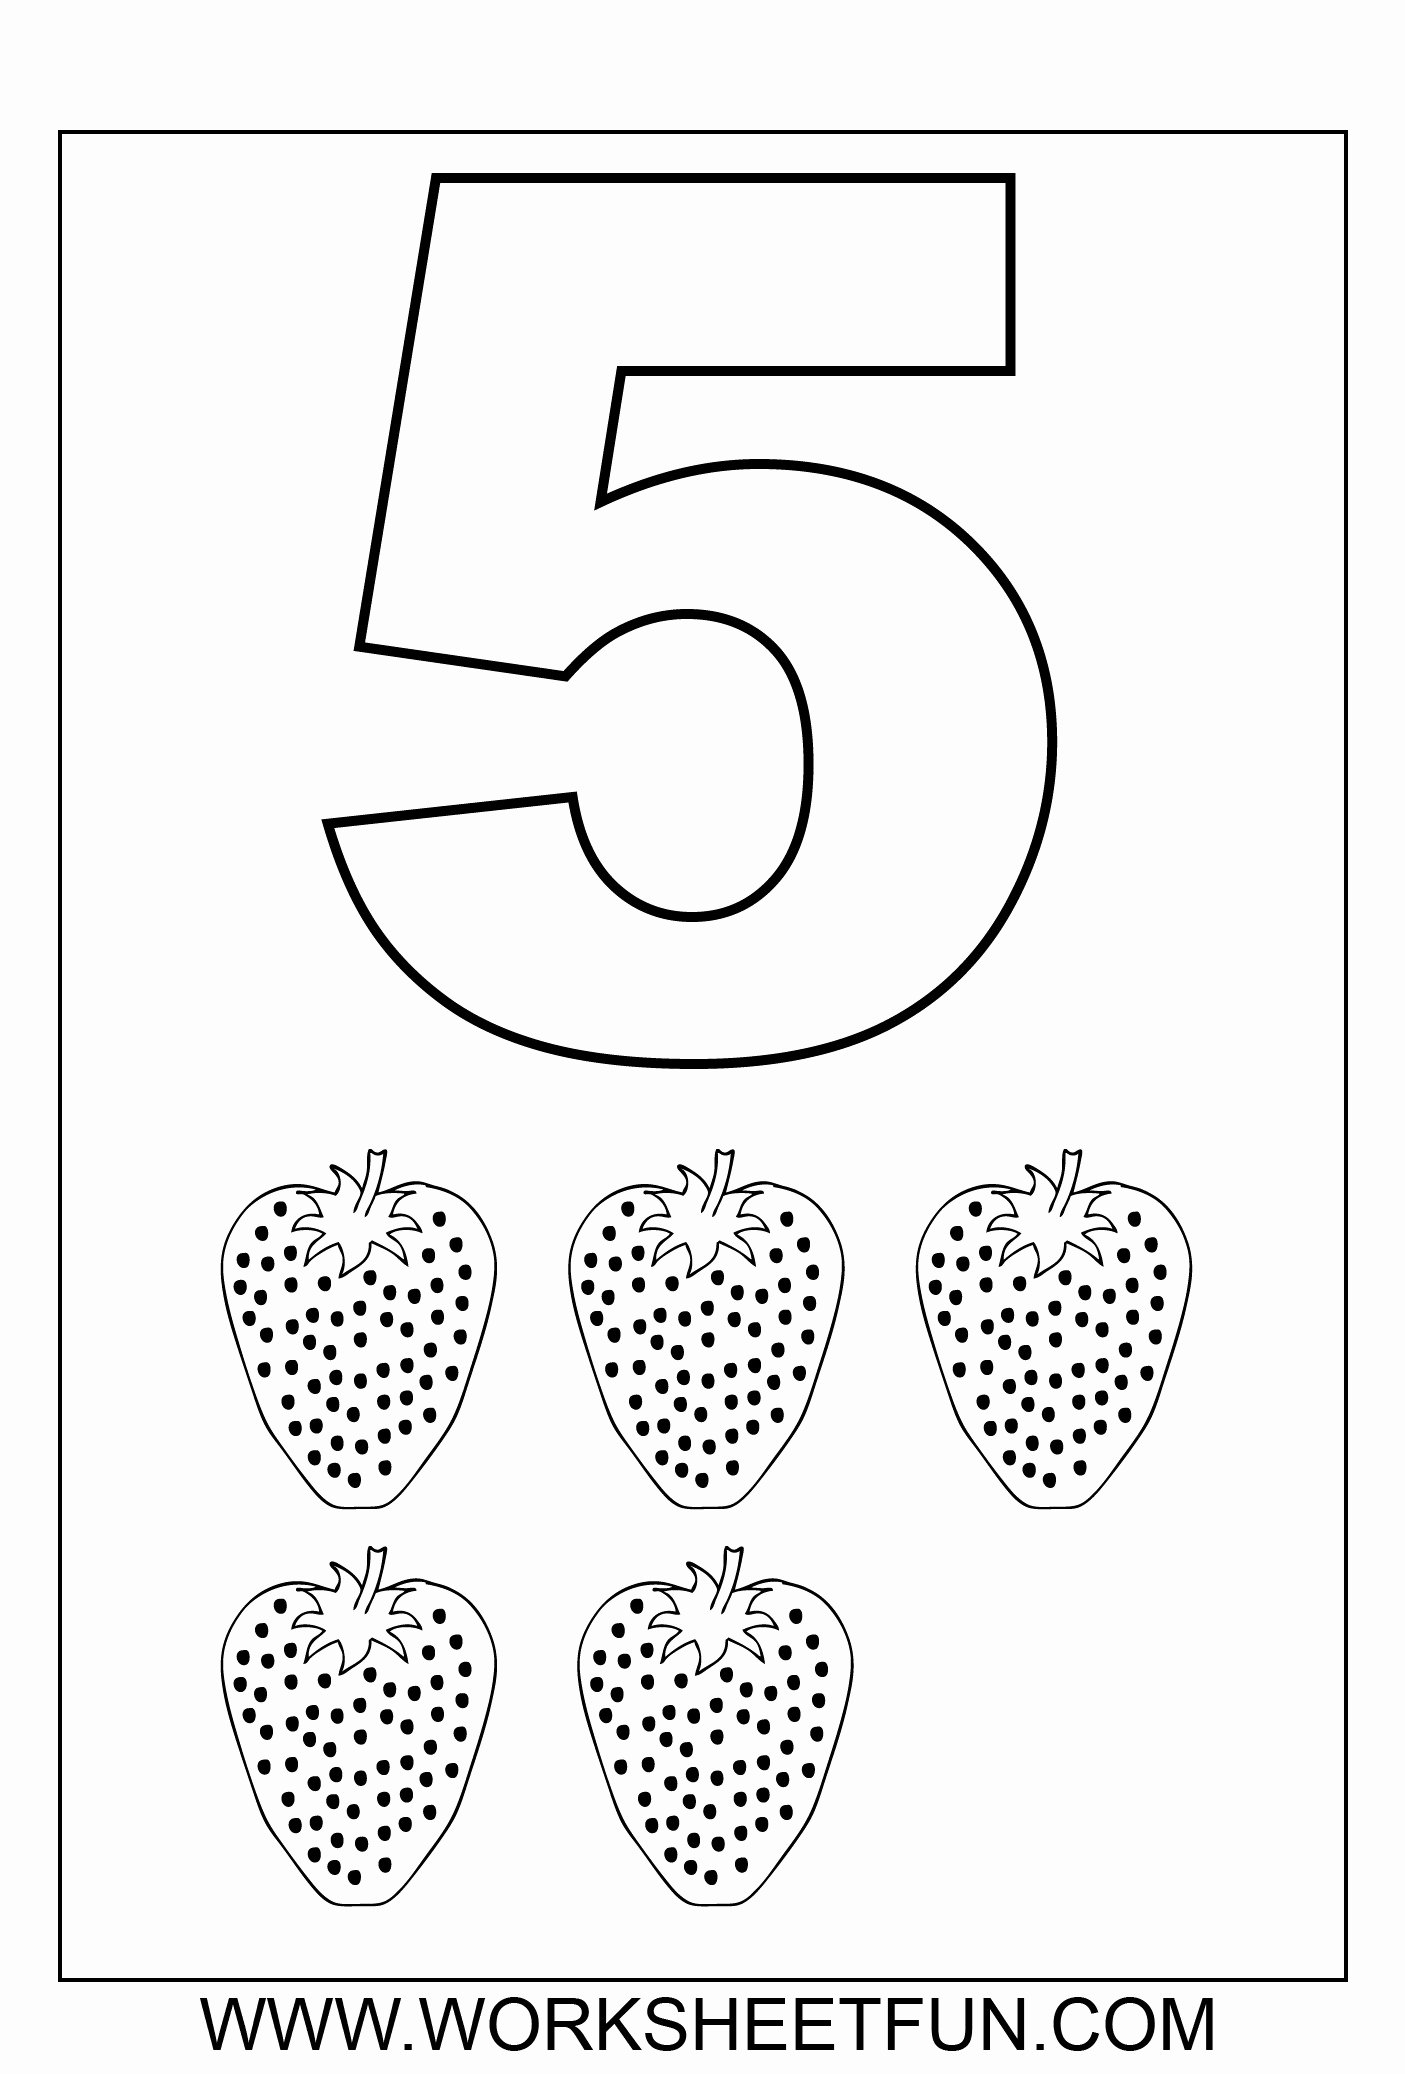 Number 5 Worksheets for Preschoolers Printable Worksheet Preschool Printable Worksheets and Activities forr